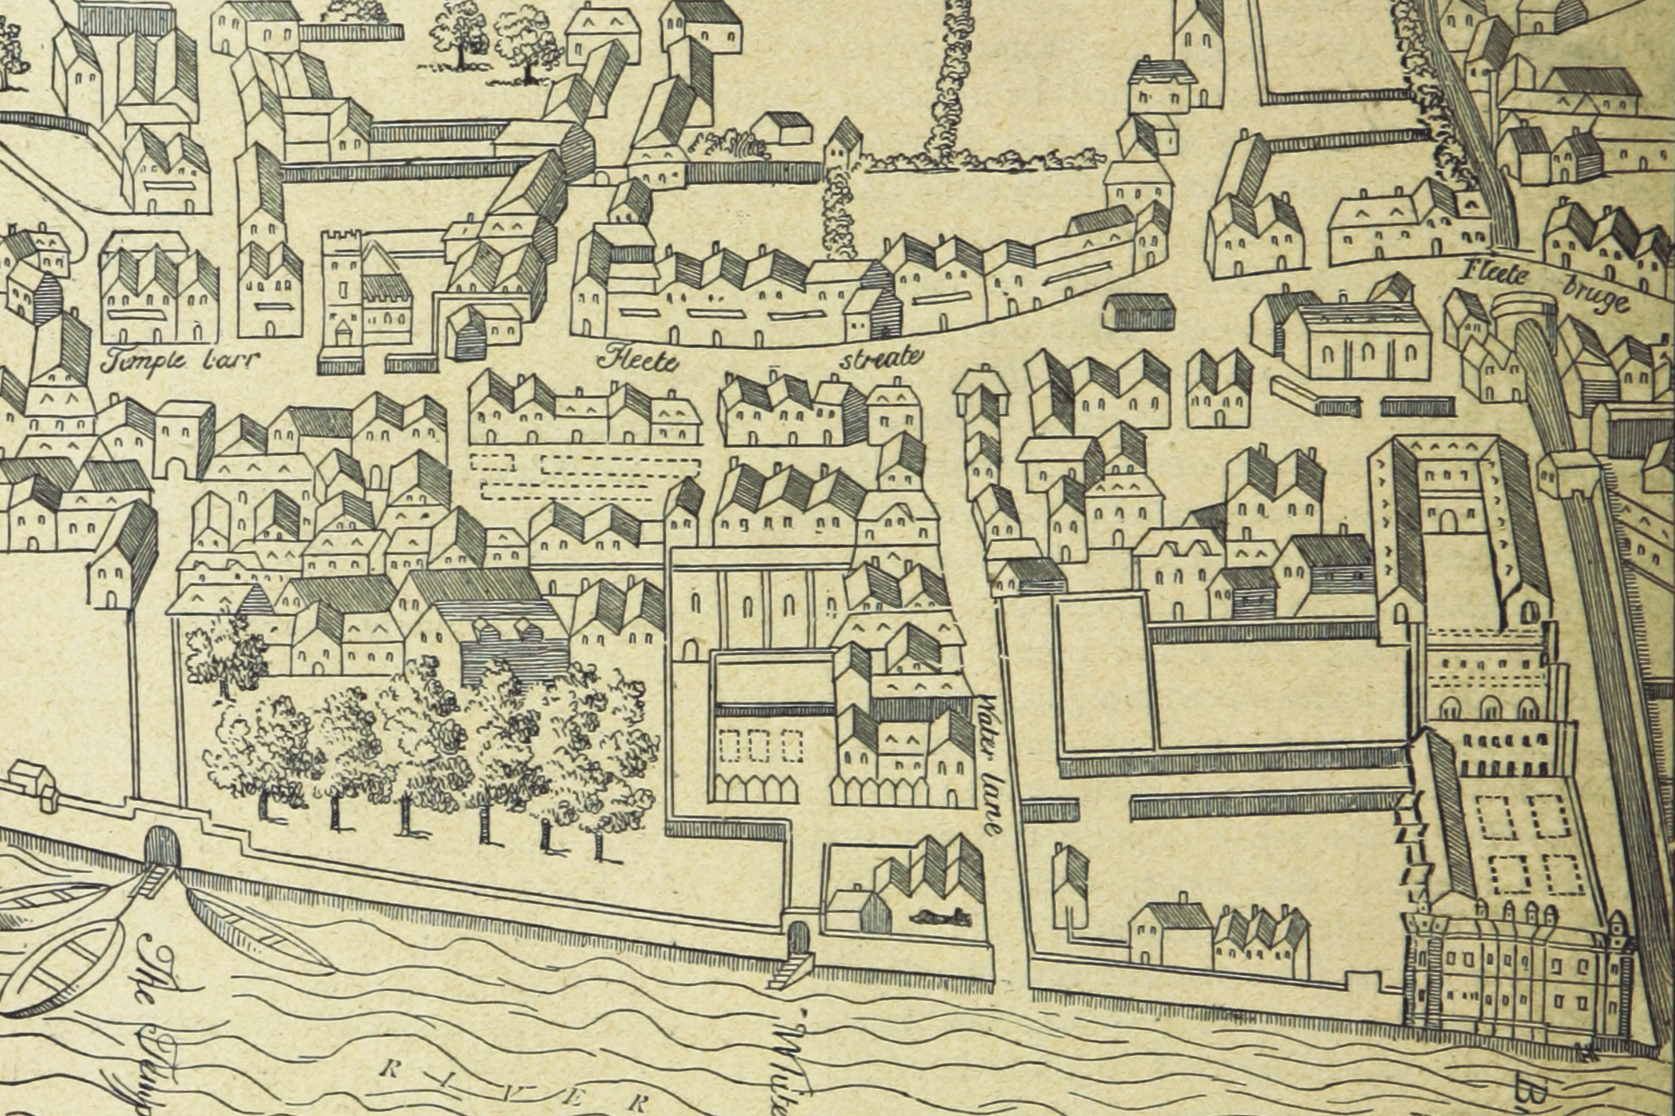 A 16th century map of Westminster.